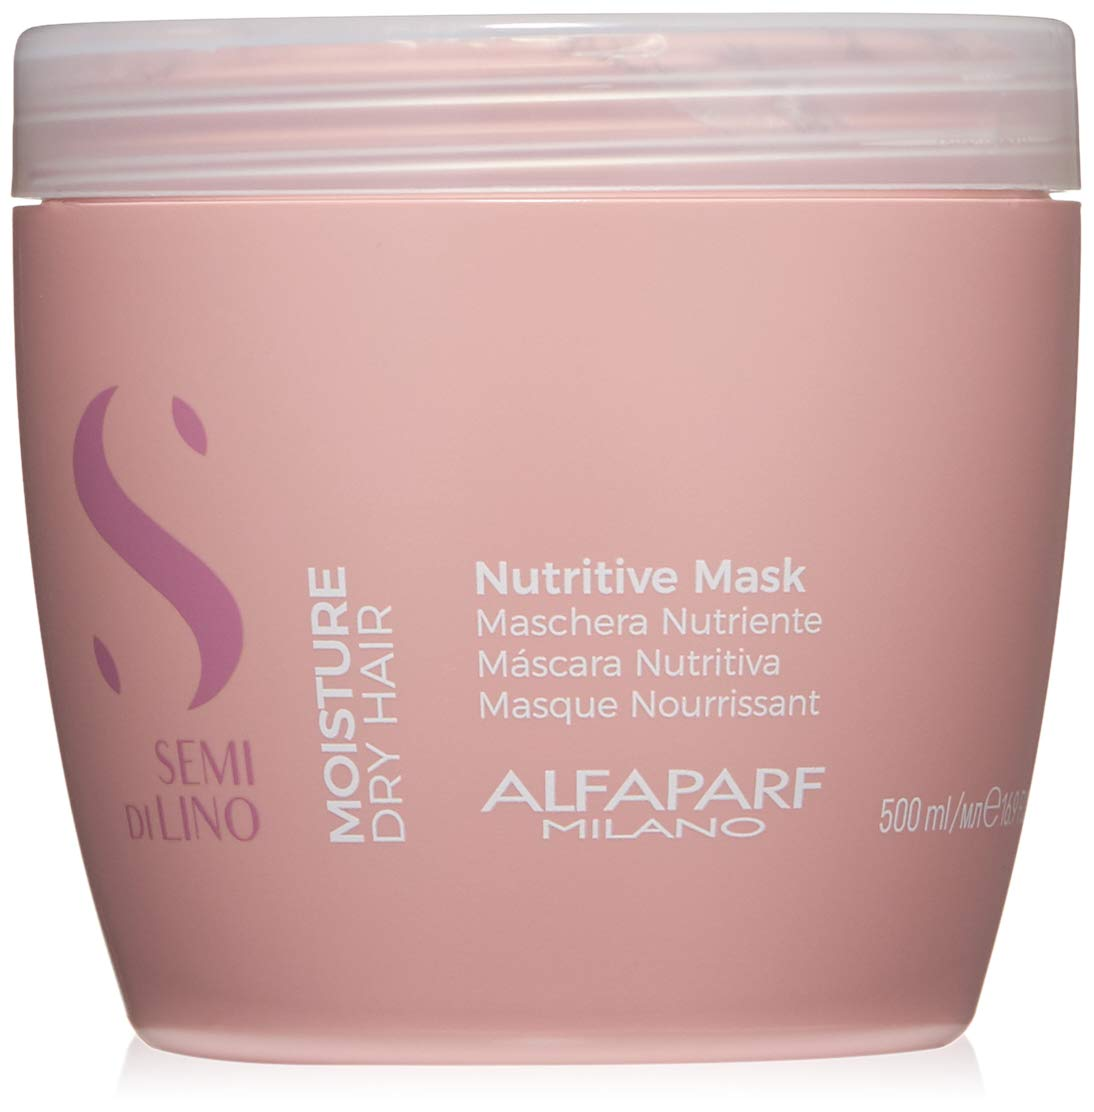 Alfaparf Milano Semi Di Lino Moisture Nutritive Mask for Dry Hair - Safe on Color Treated Hair - Sulfate, SLS, Paraben and Paraffin Free - Professional Salon Quality by Alfaparf Milano (Image #1)